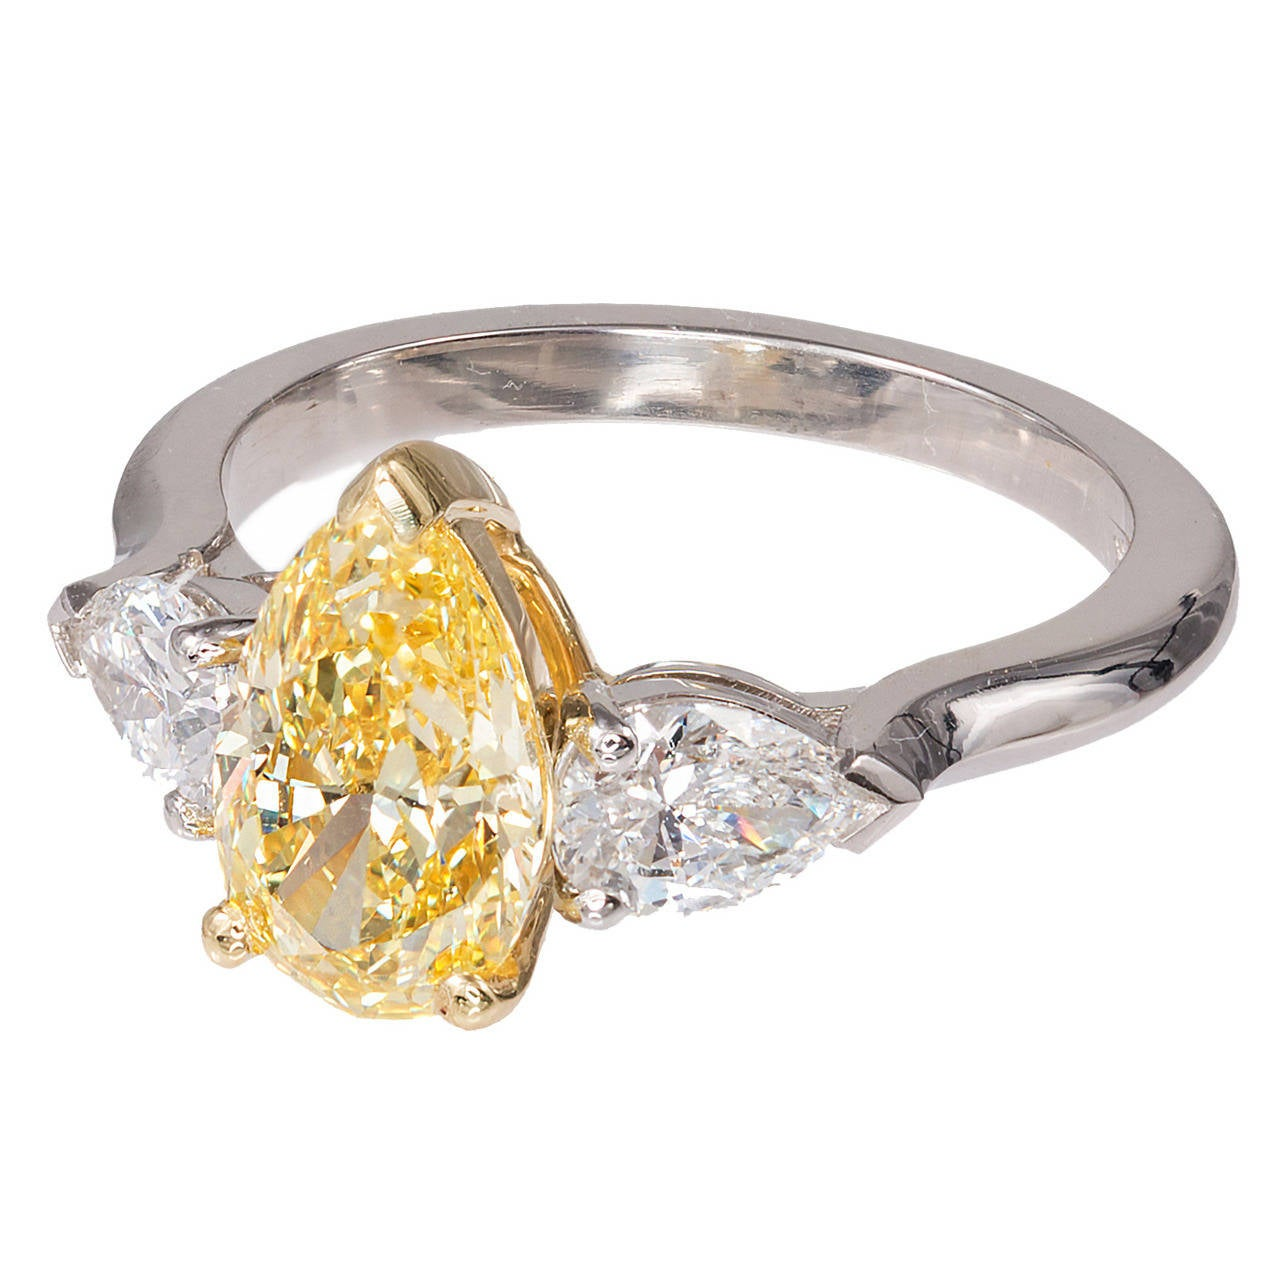 Peter Suchy 1 54 Carat Pear Yellow White Diamond Platinum